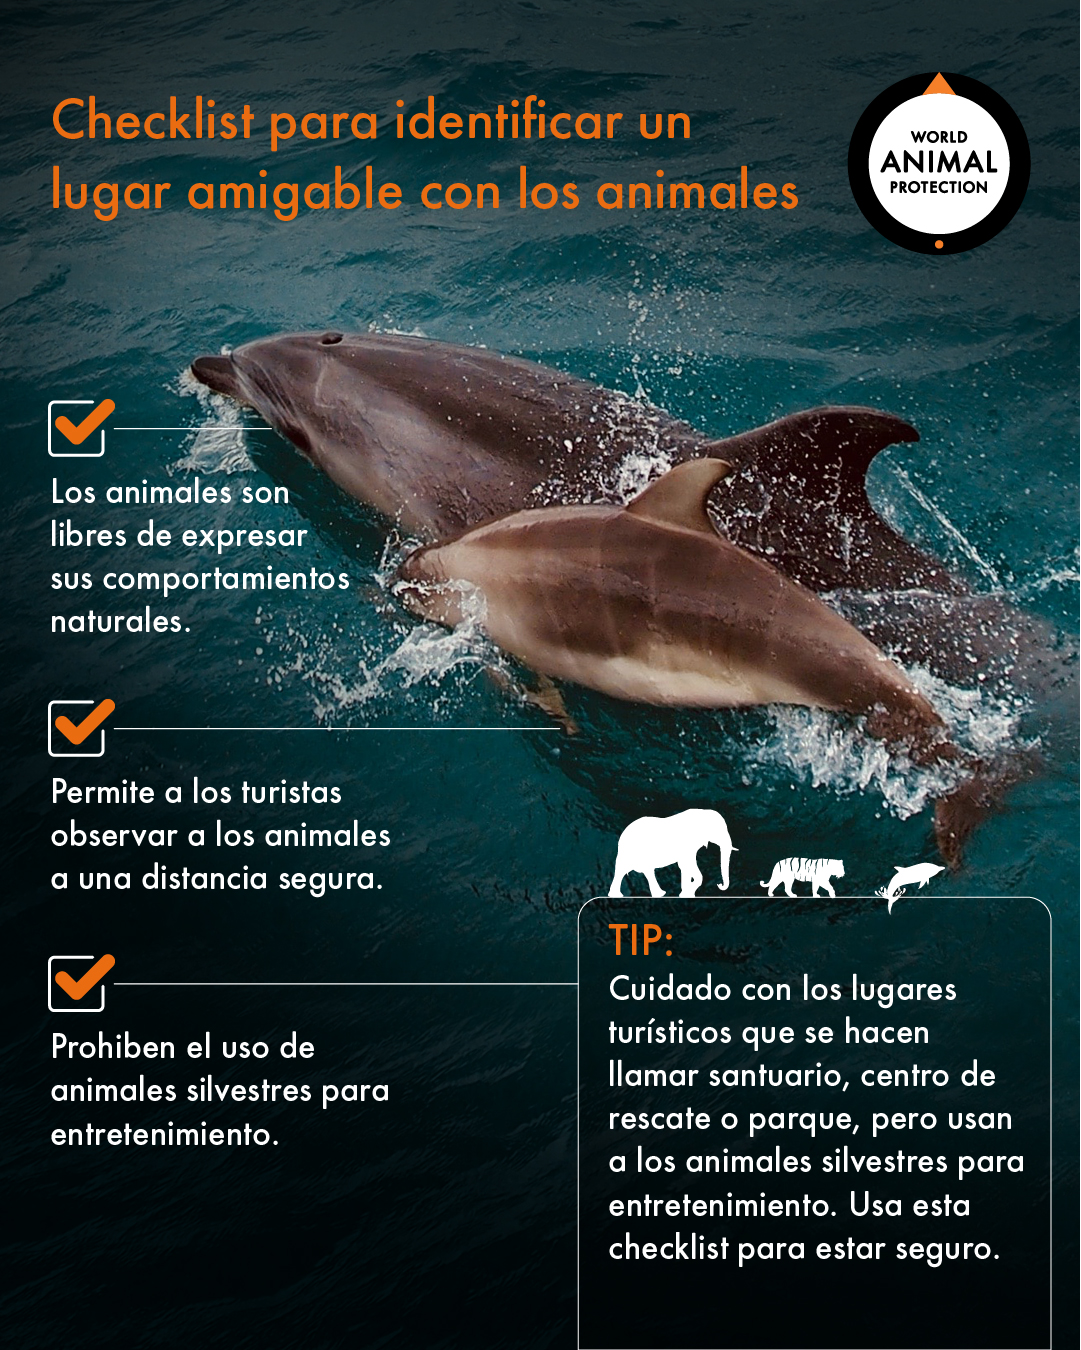 checklist lugar amigable con animales 02